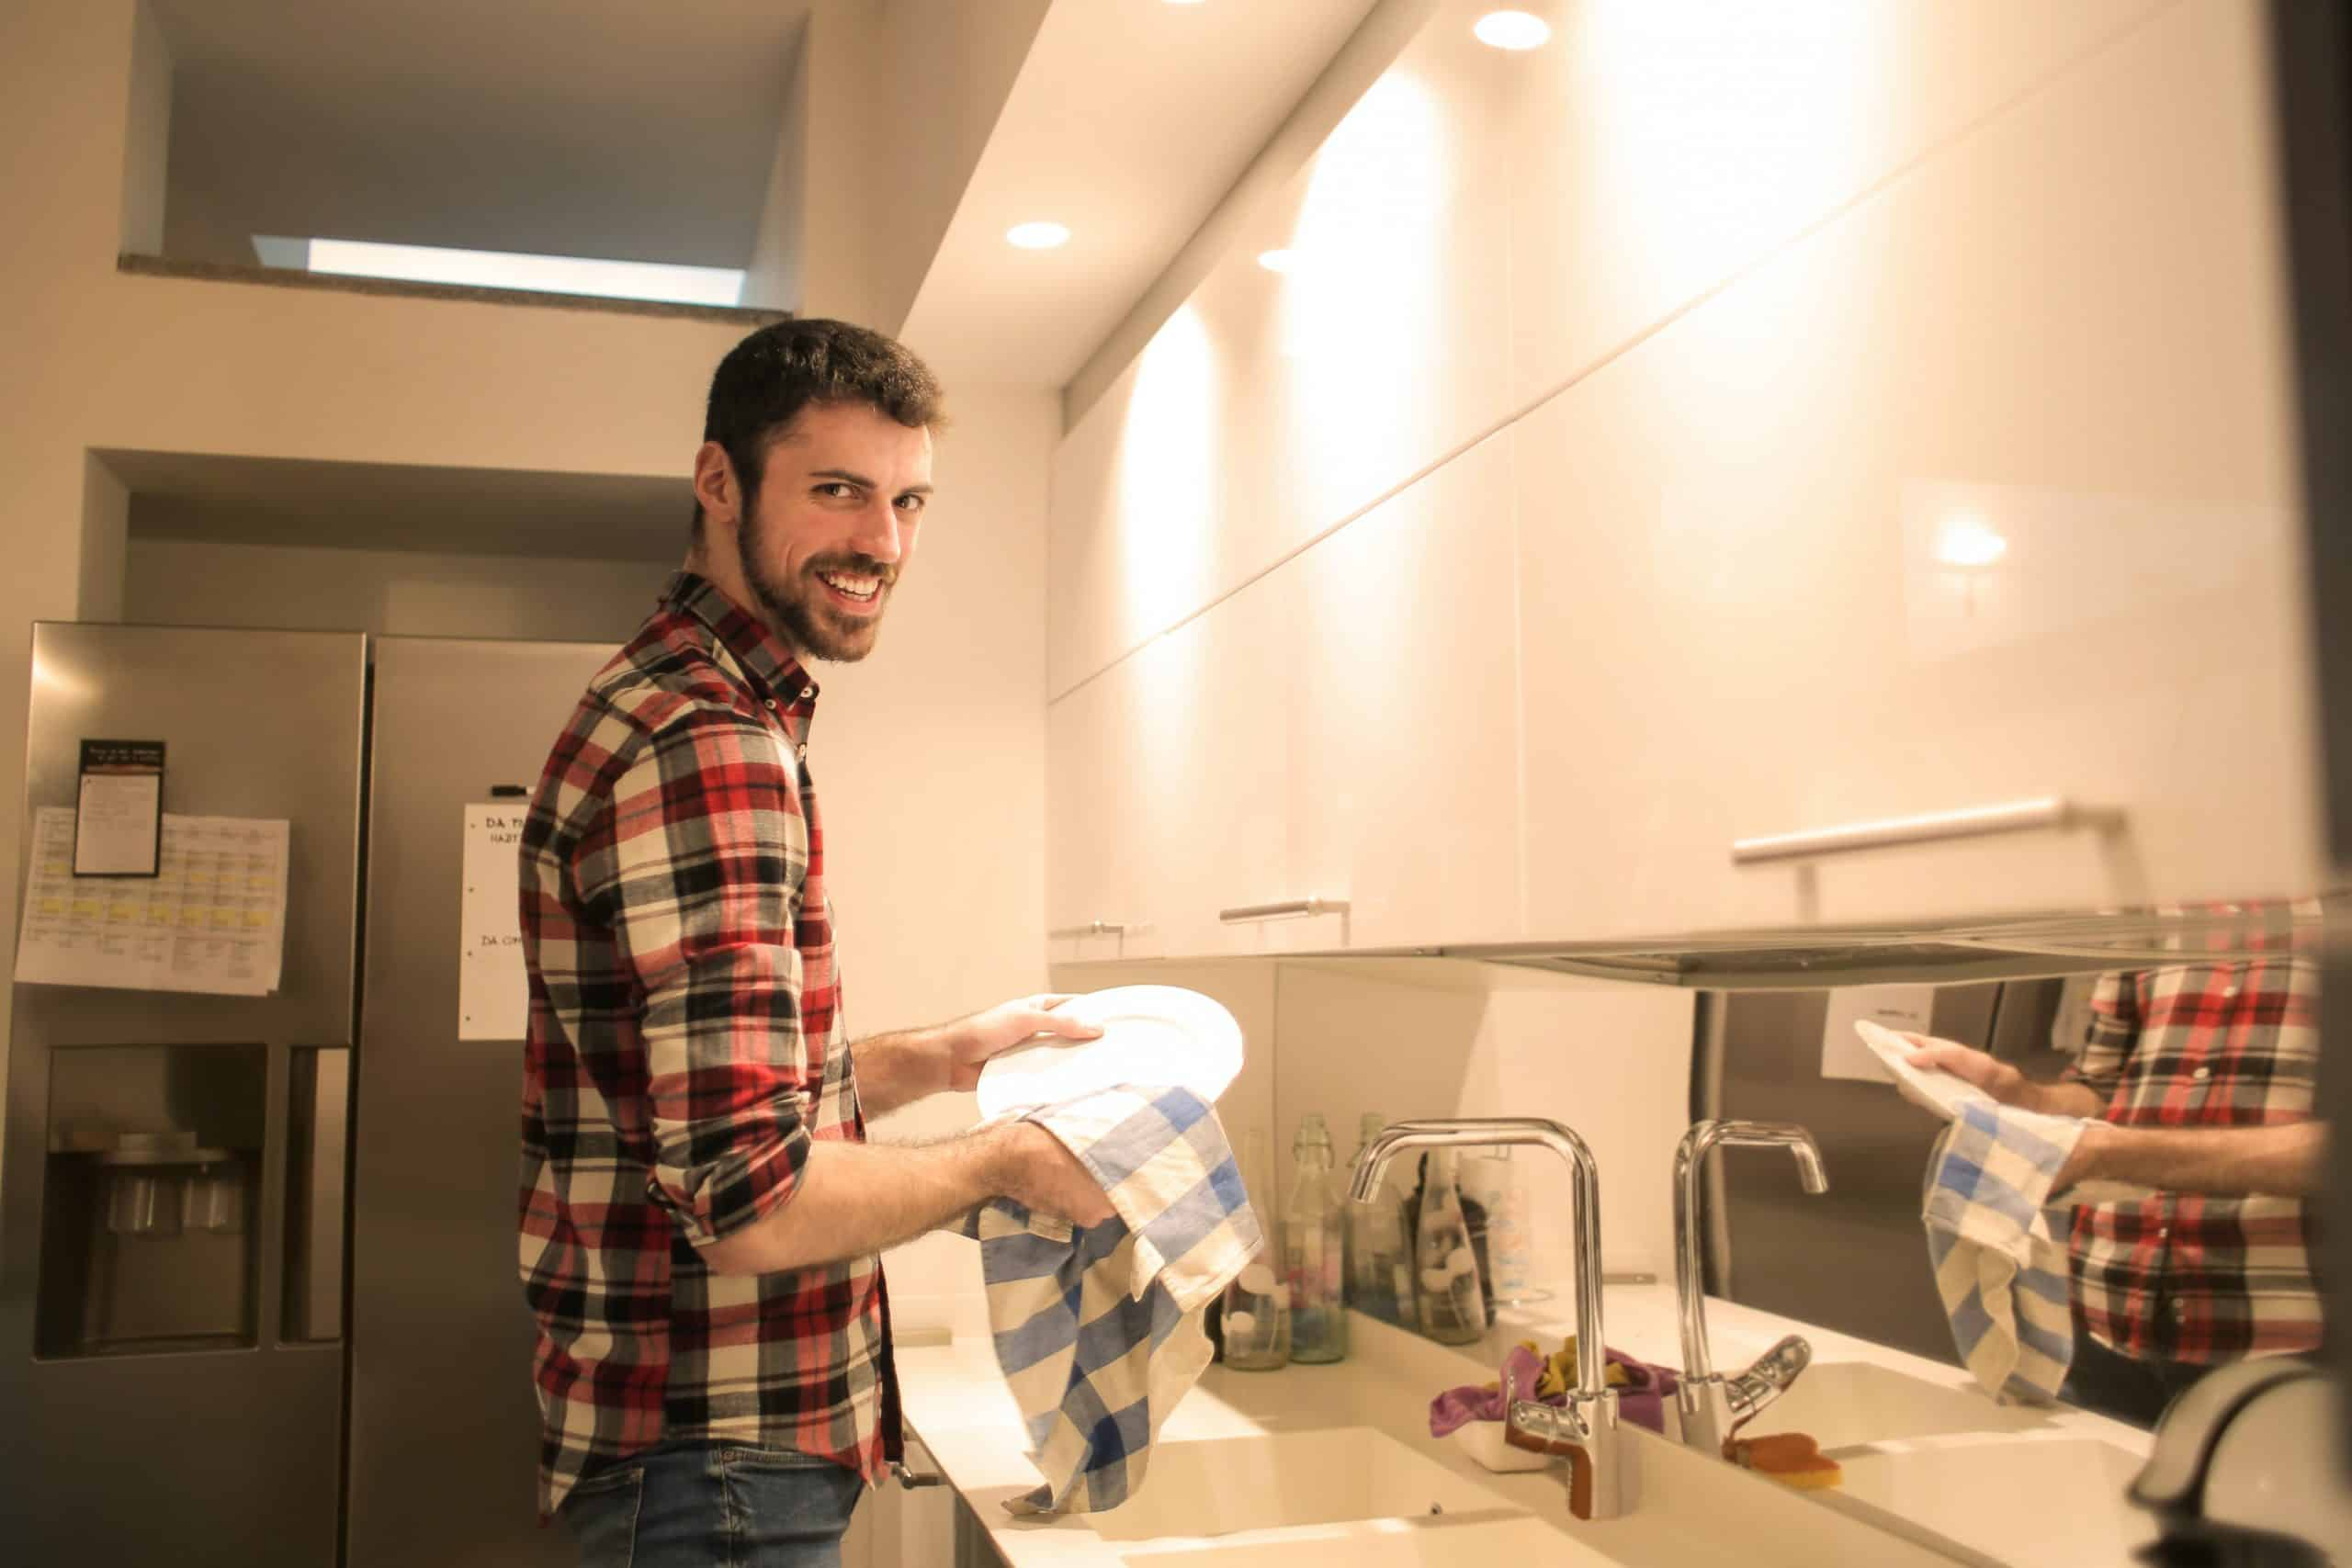 woman taking a picture of her cheerful boyfriend washing the dishes